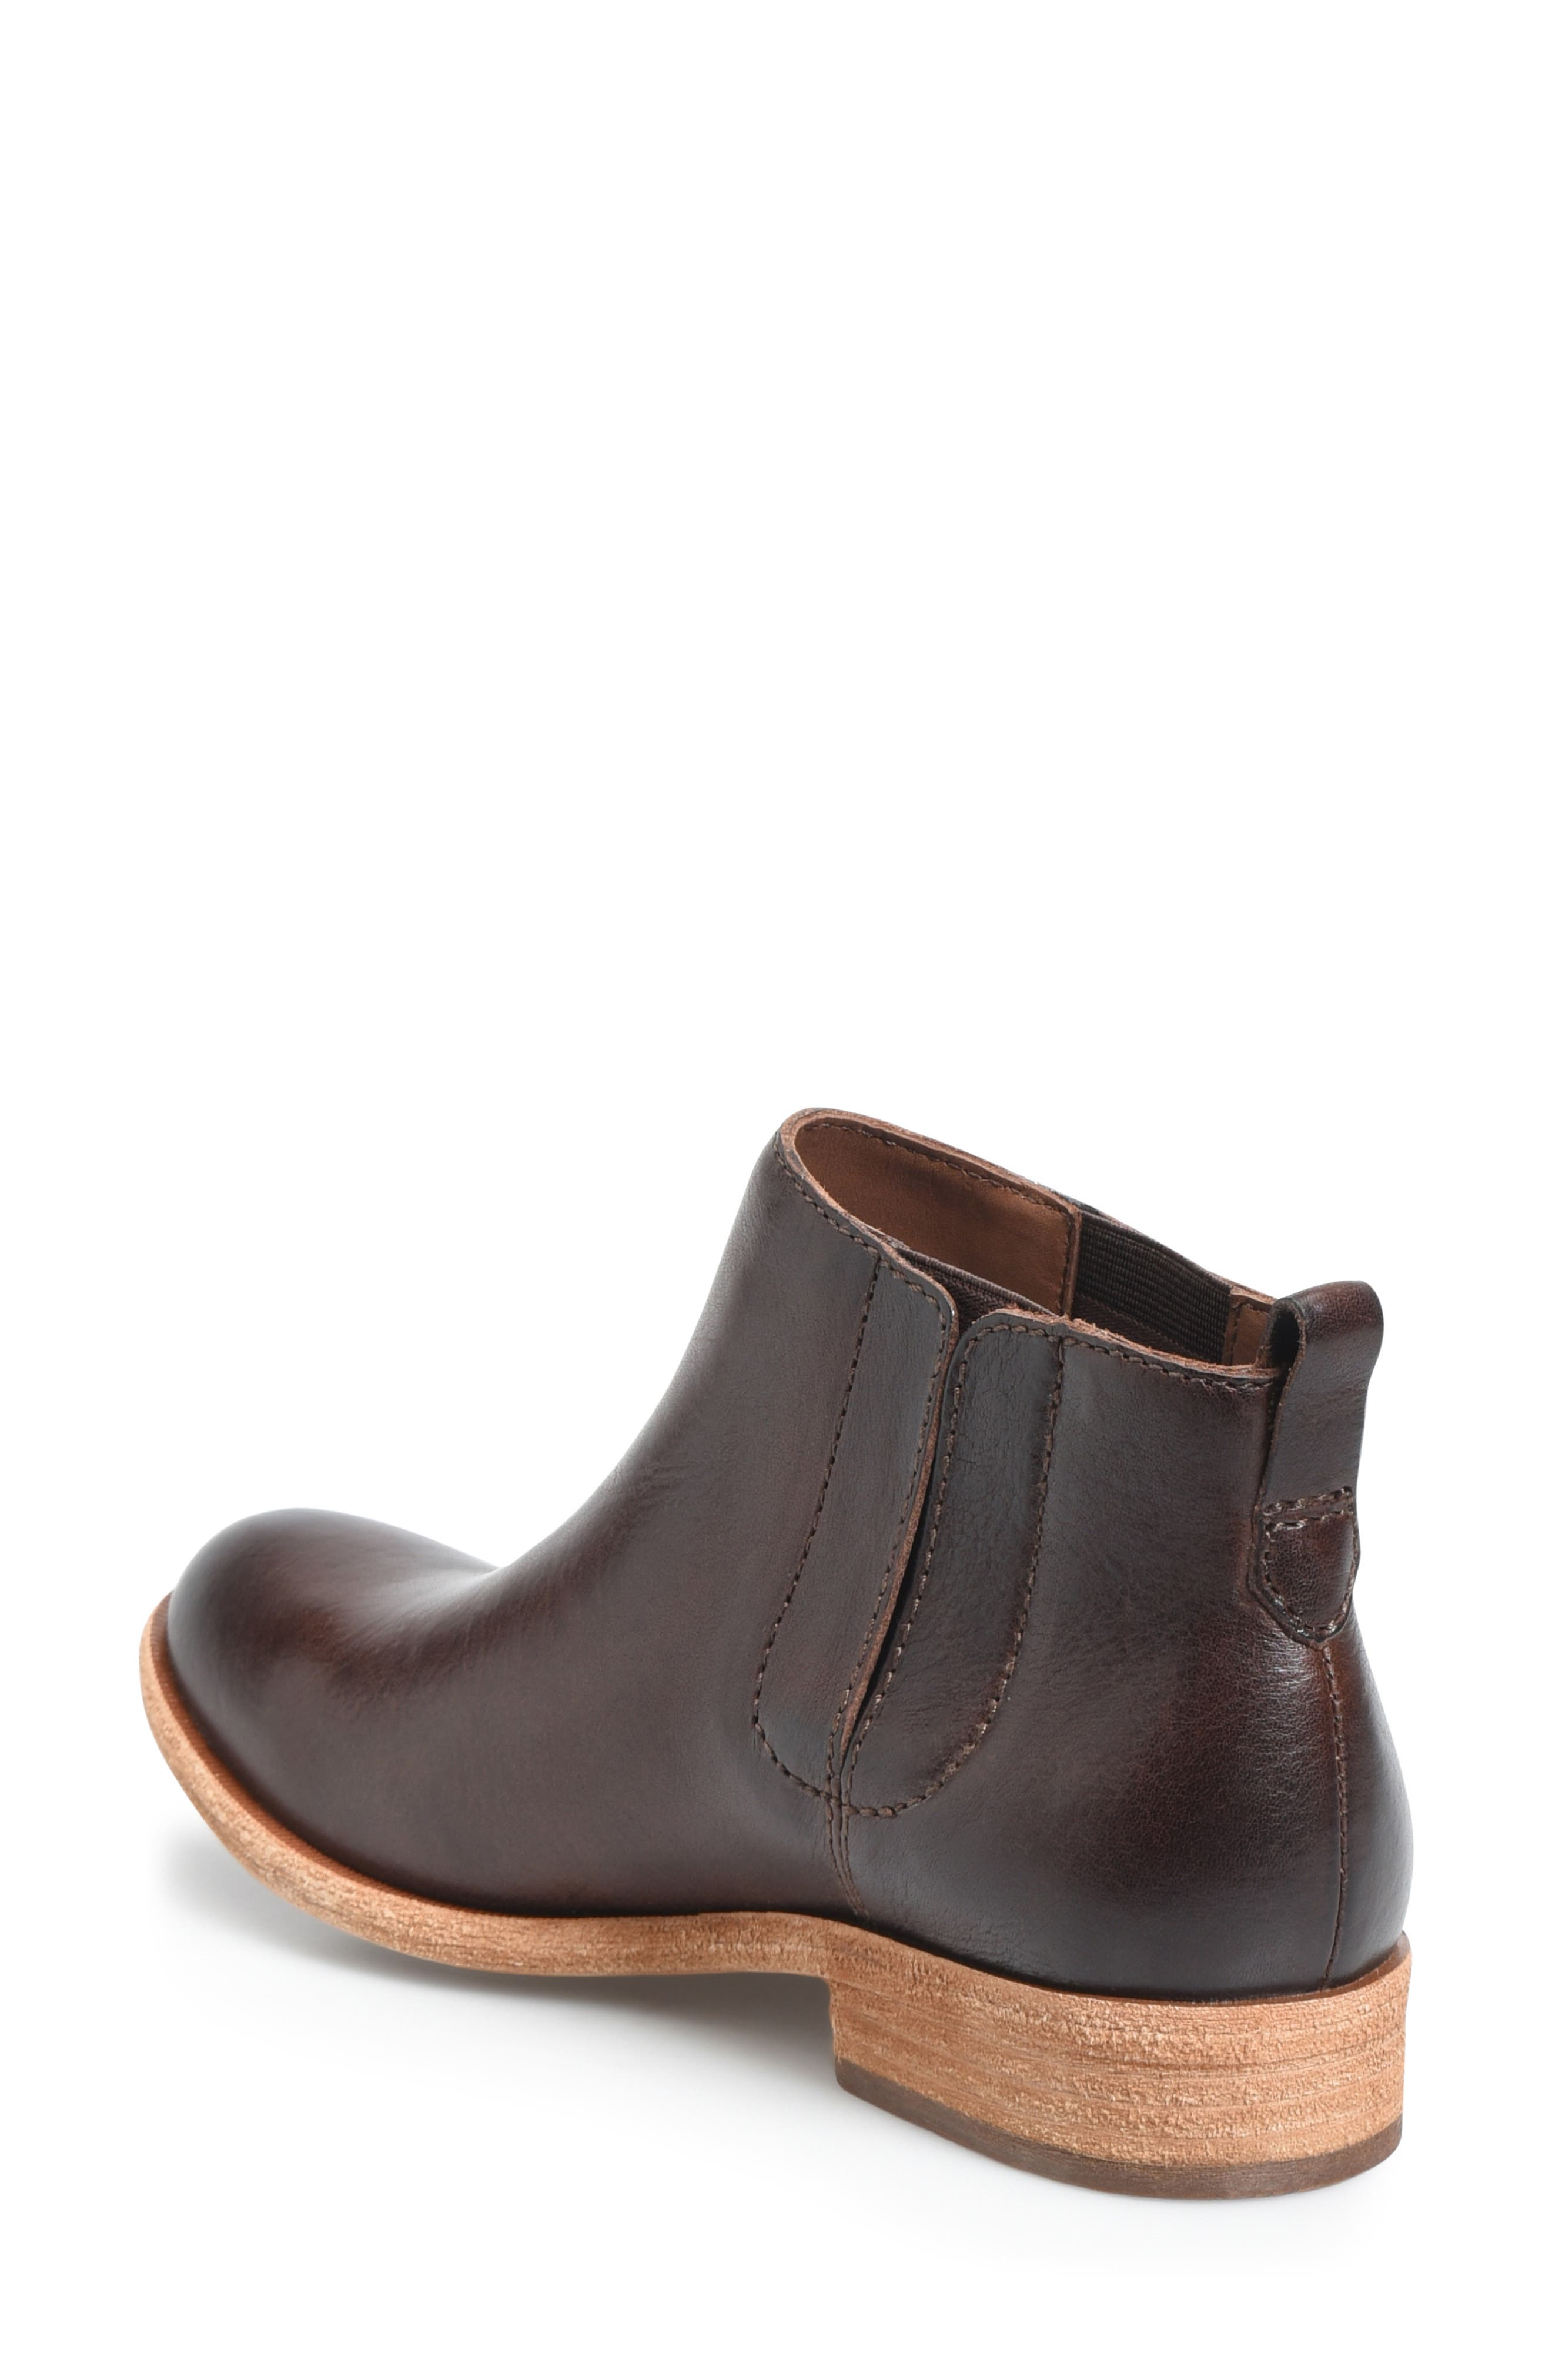 KORK-EASE<SUP>®</SUP>, Velma Bootie, Alternate thumbnail 2, color, DARK BROWN LEATHER